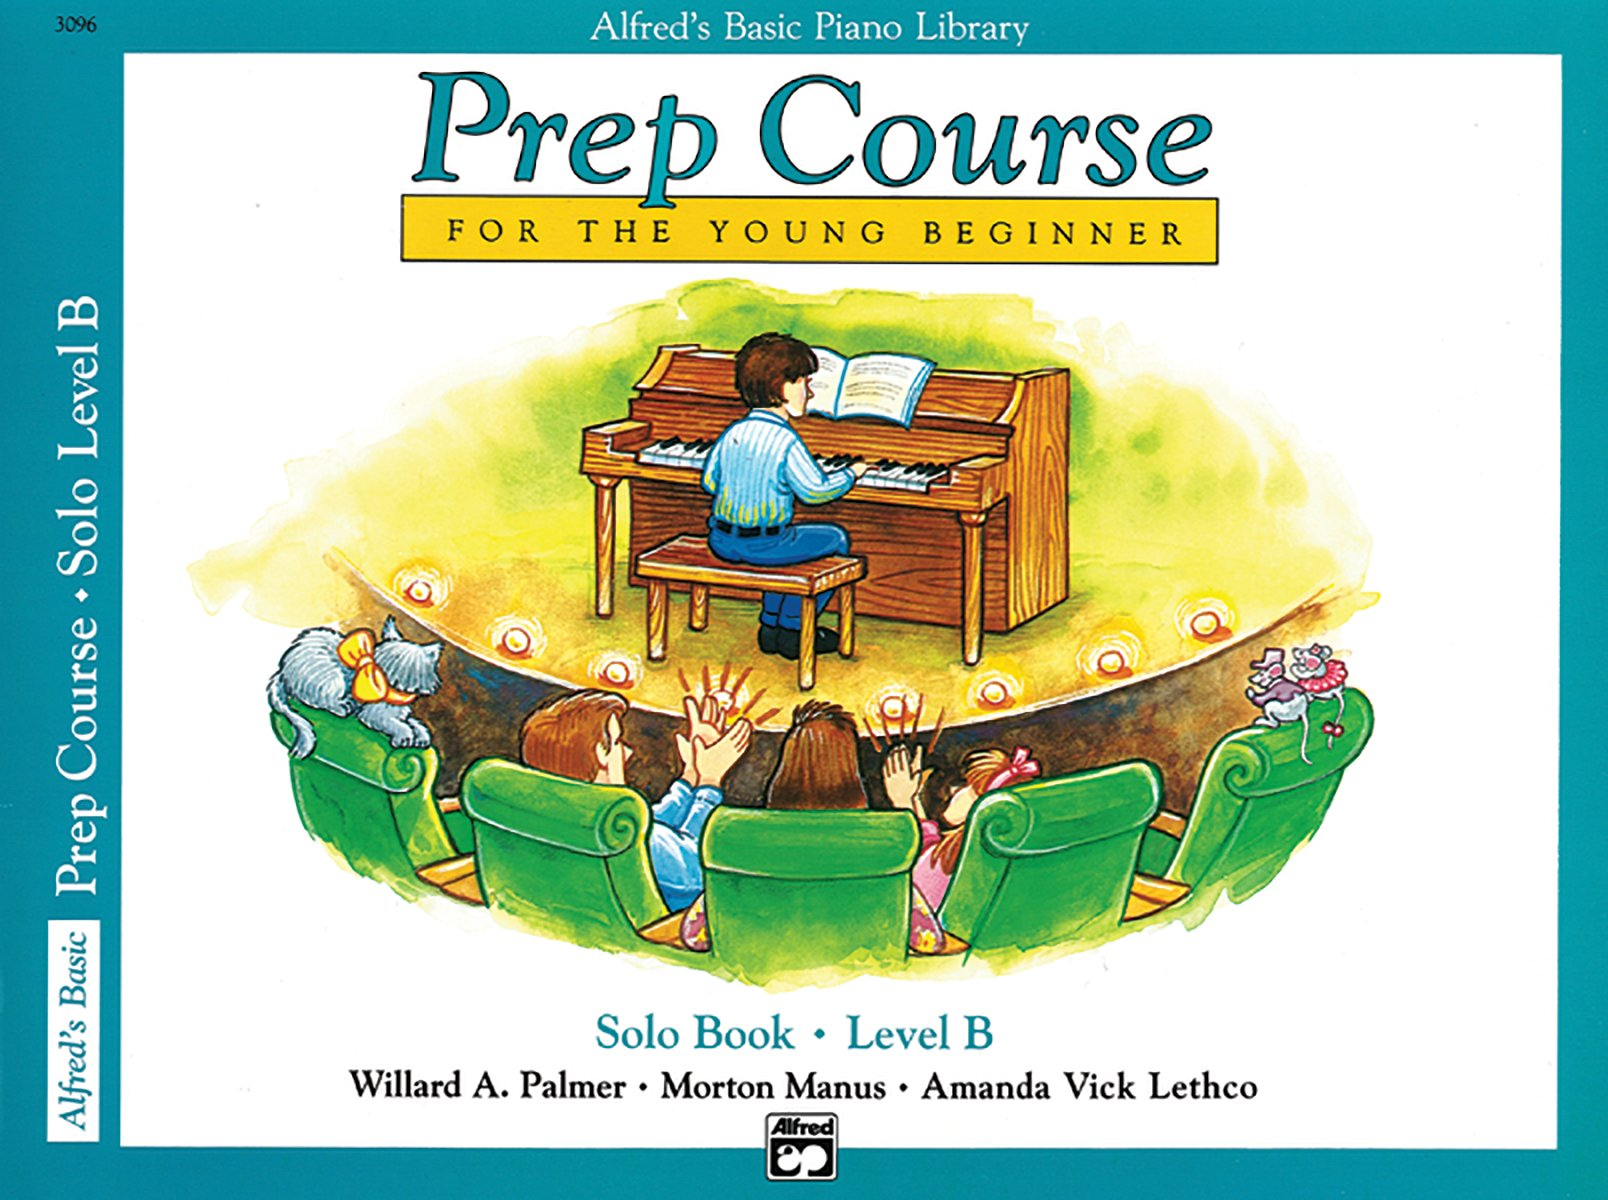 Download Alfred's Basic Piano Library: Prep Course for The Young Beginner Solo Book, Level B ebook